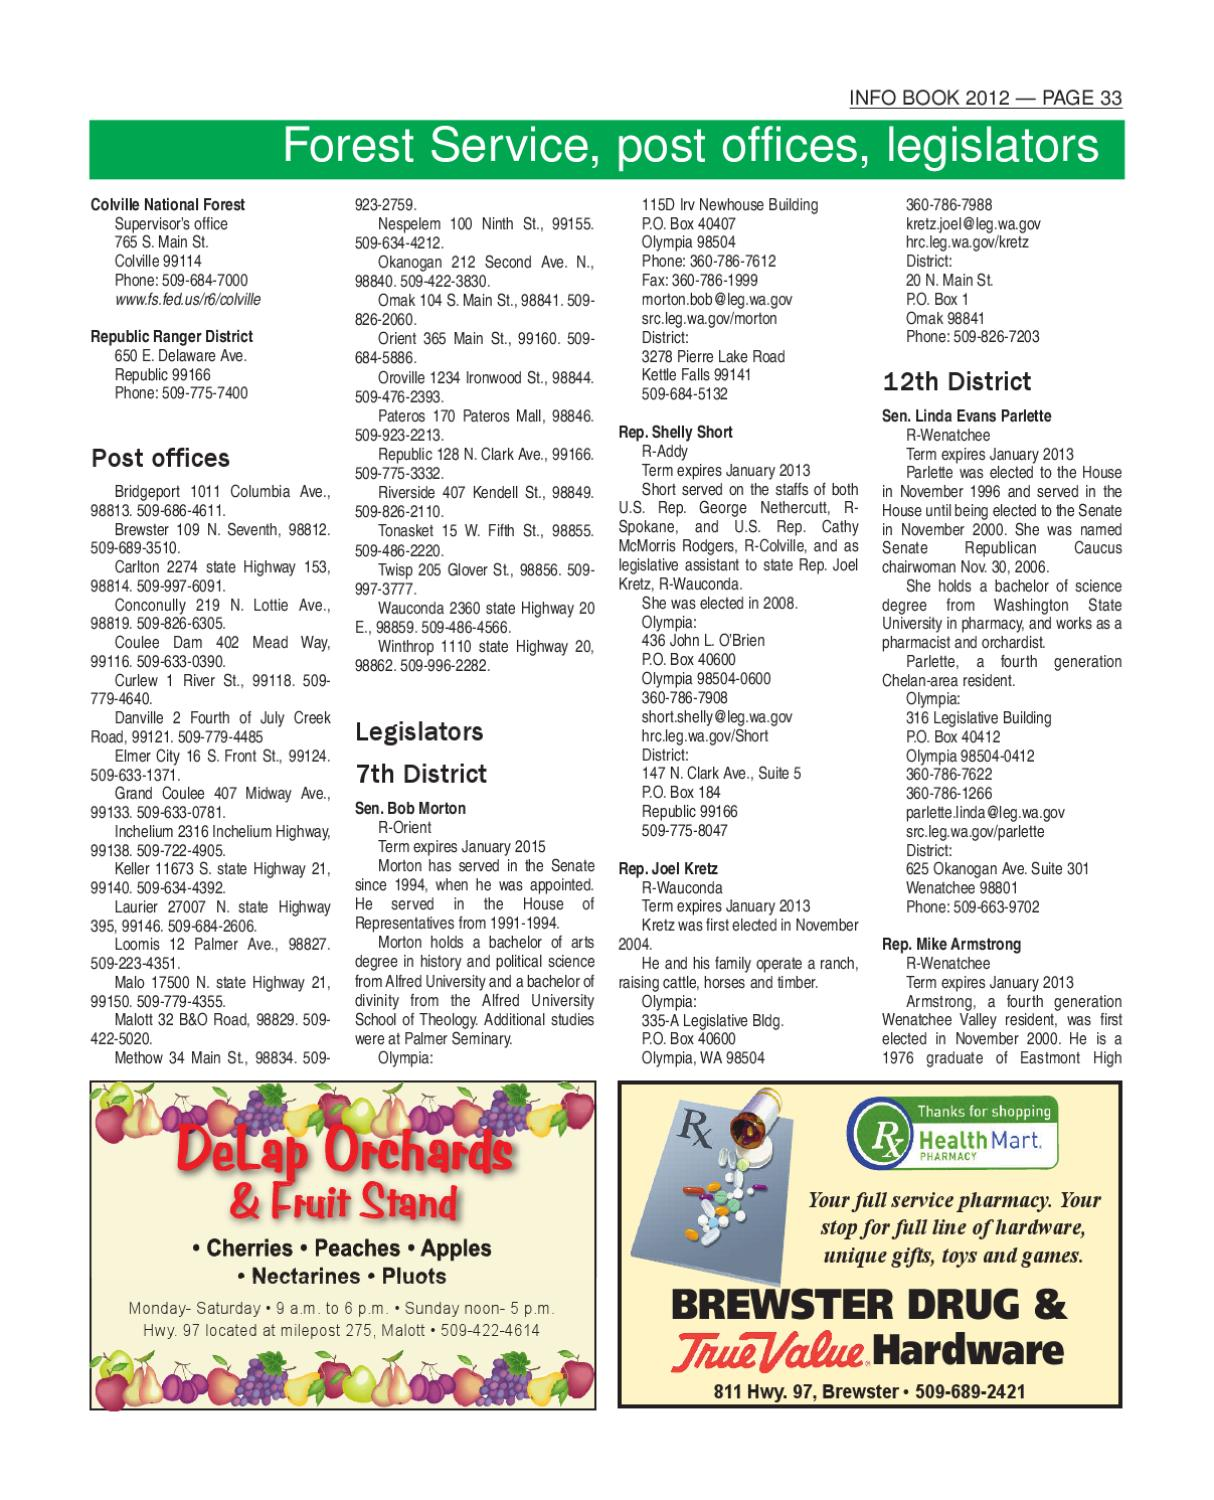 InfoBook 2012 By The Omak-Okanogan County Chronicle